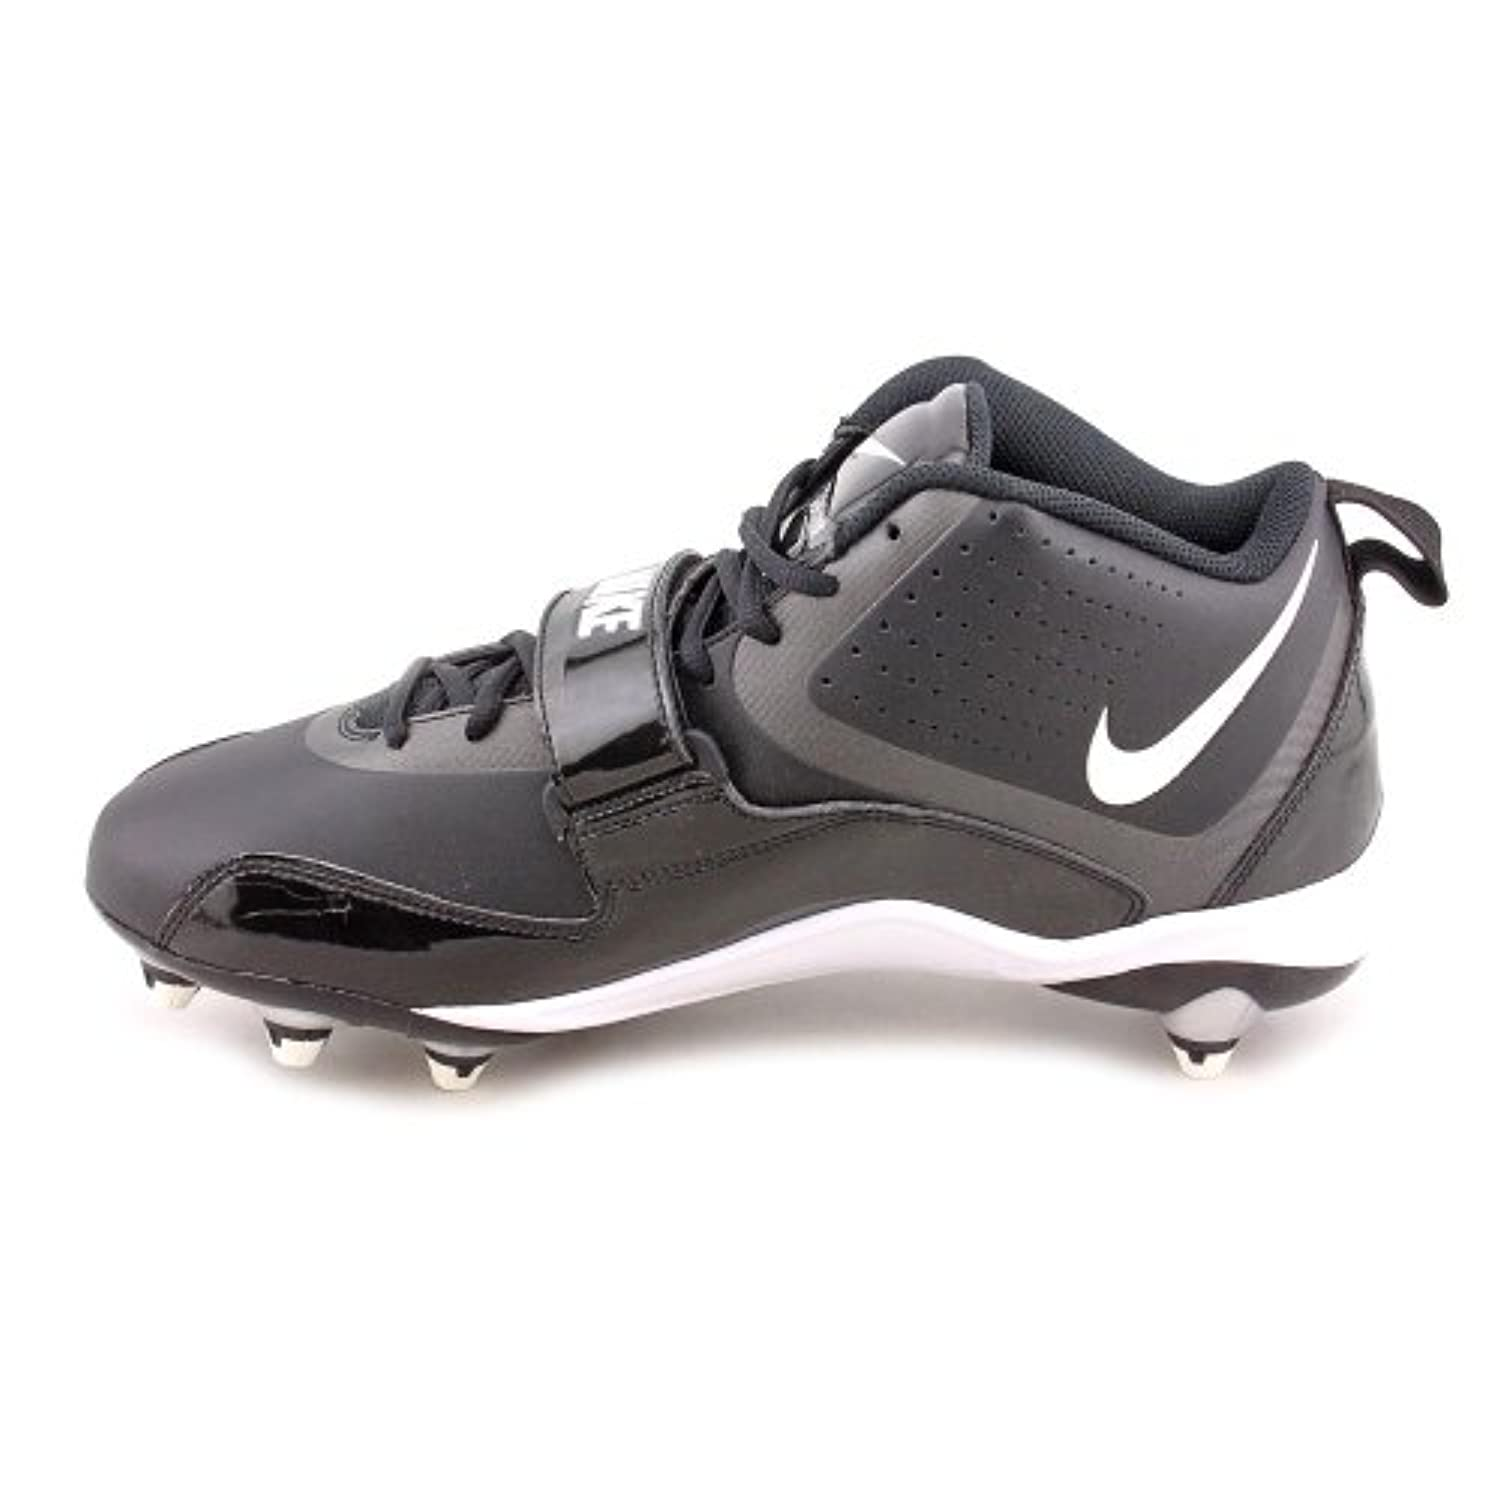 Nike Zoom Code D Mens Black/White Mid Top Football Cleats